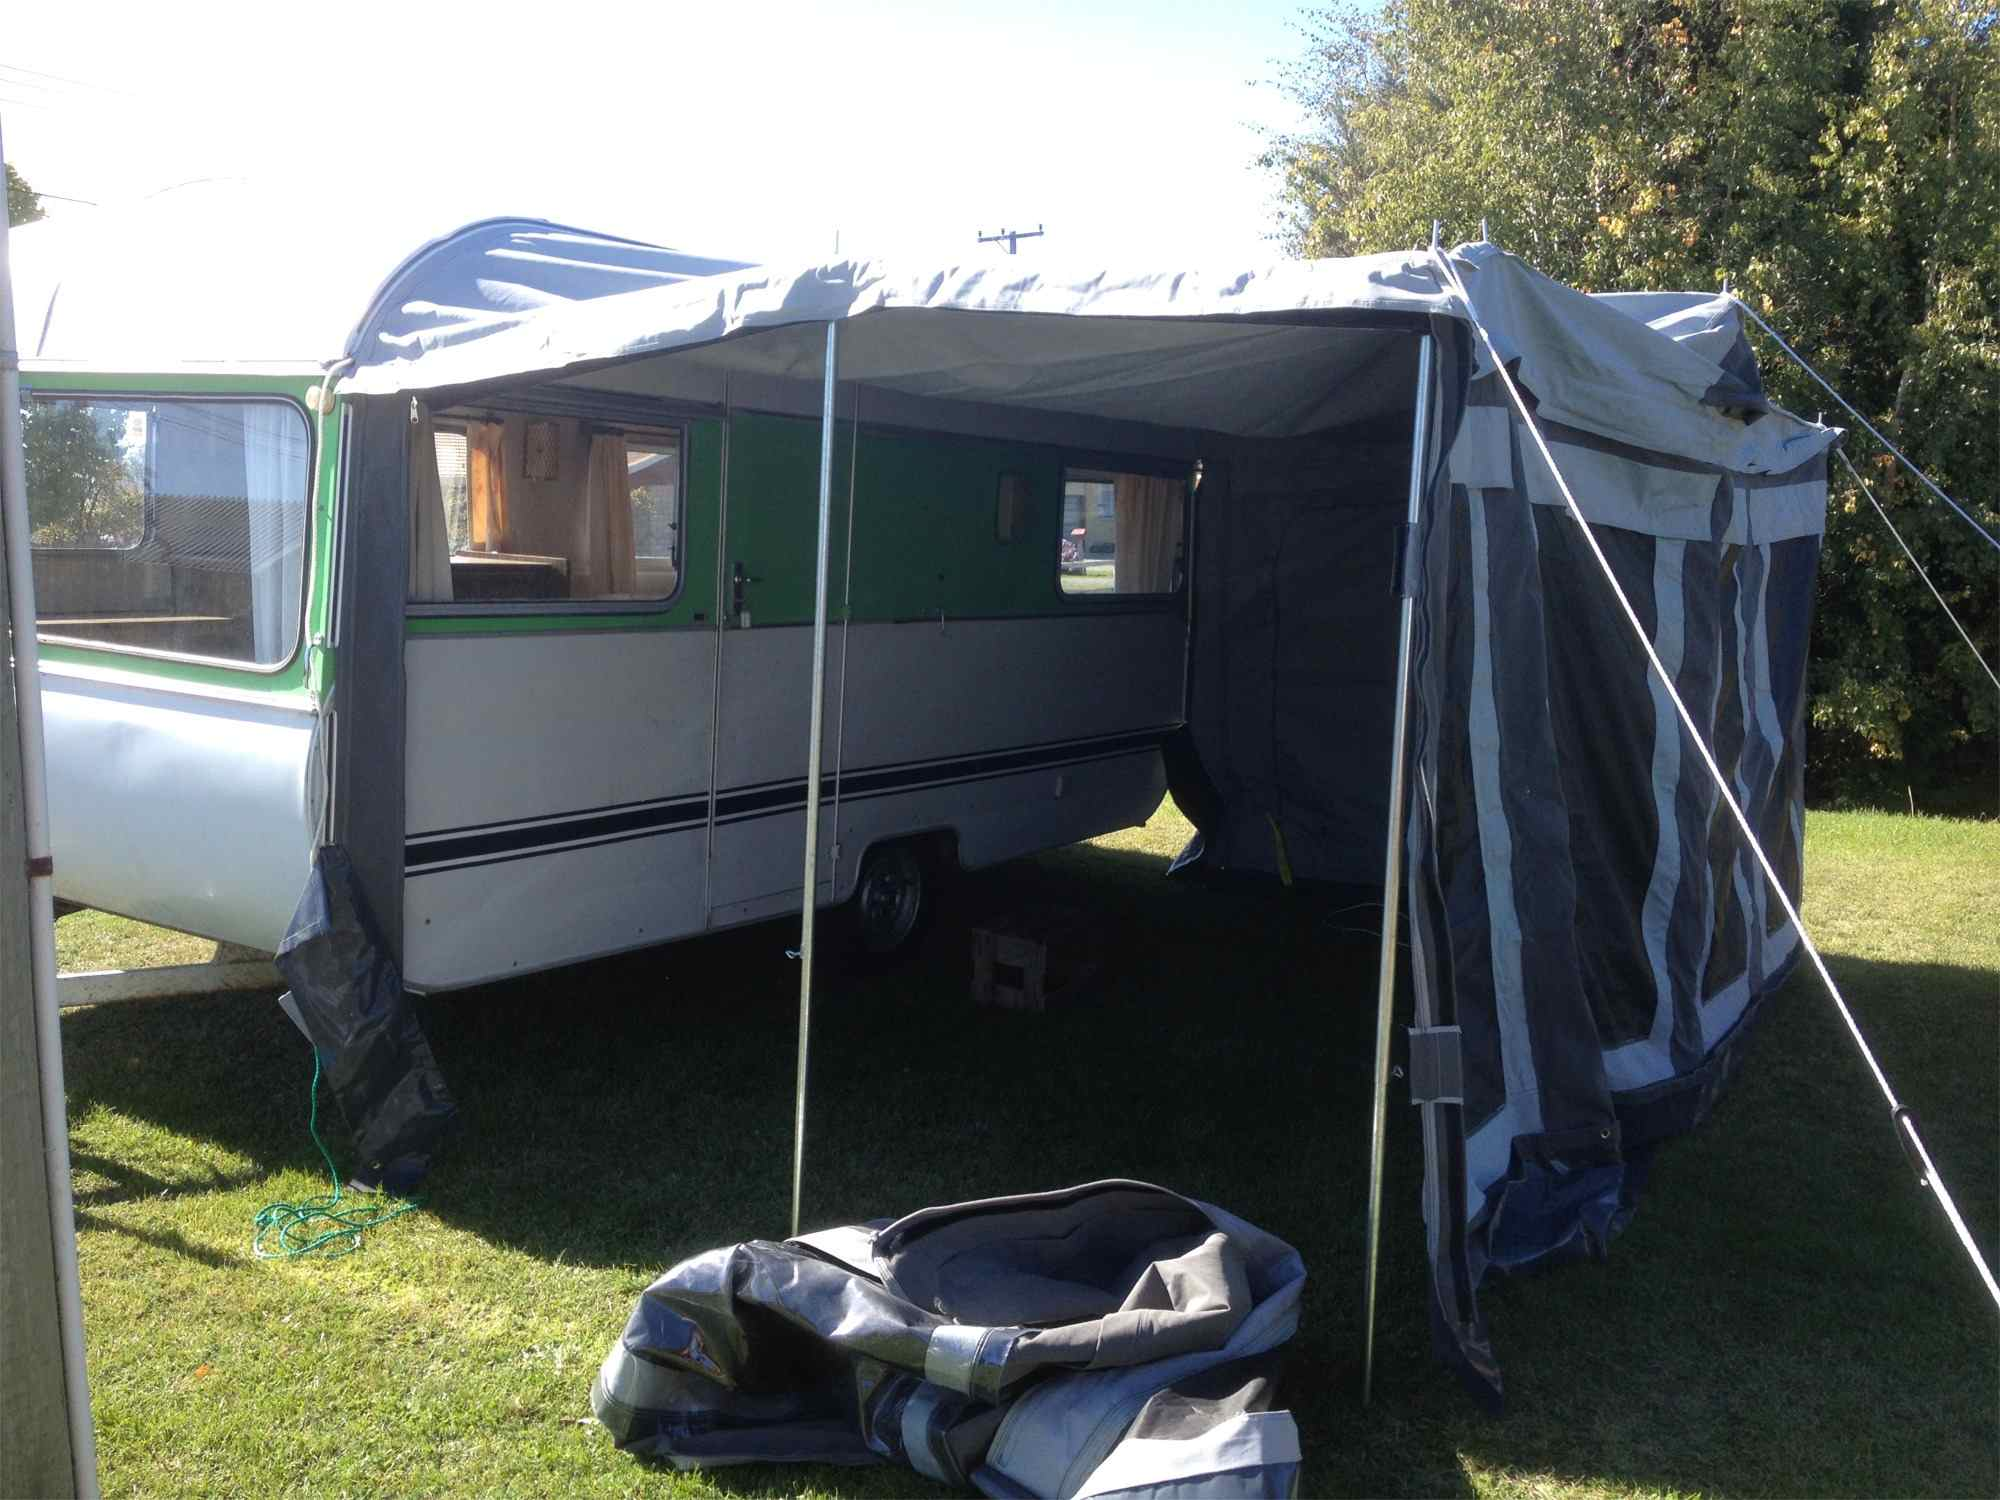 Pictures Show Awning Put Up Very Hurriedly To Check Fitment Before Heading Off Camping I Can Assure It Fits Perfectly Happy Thanks Much Nick